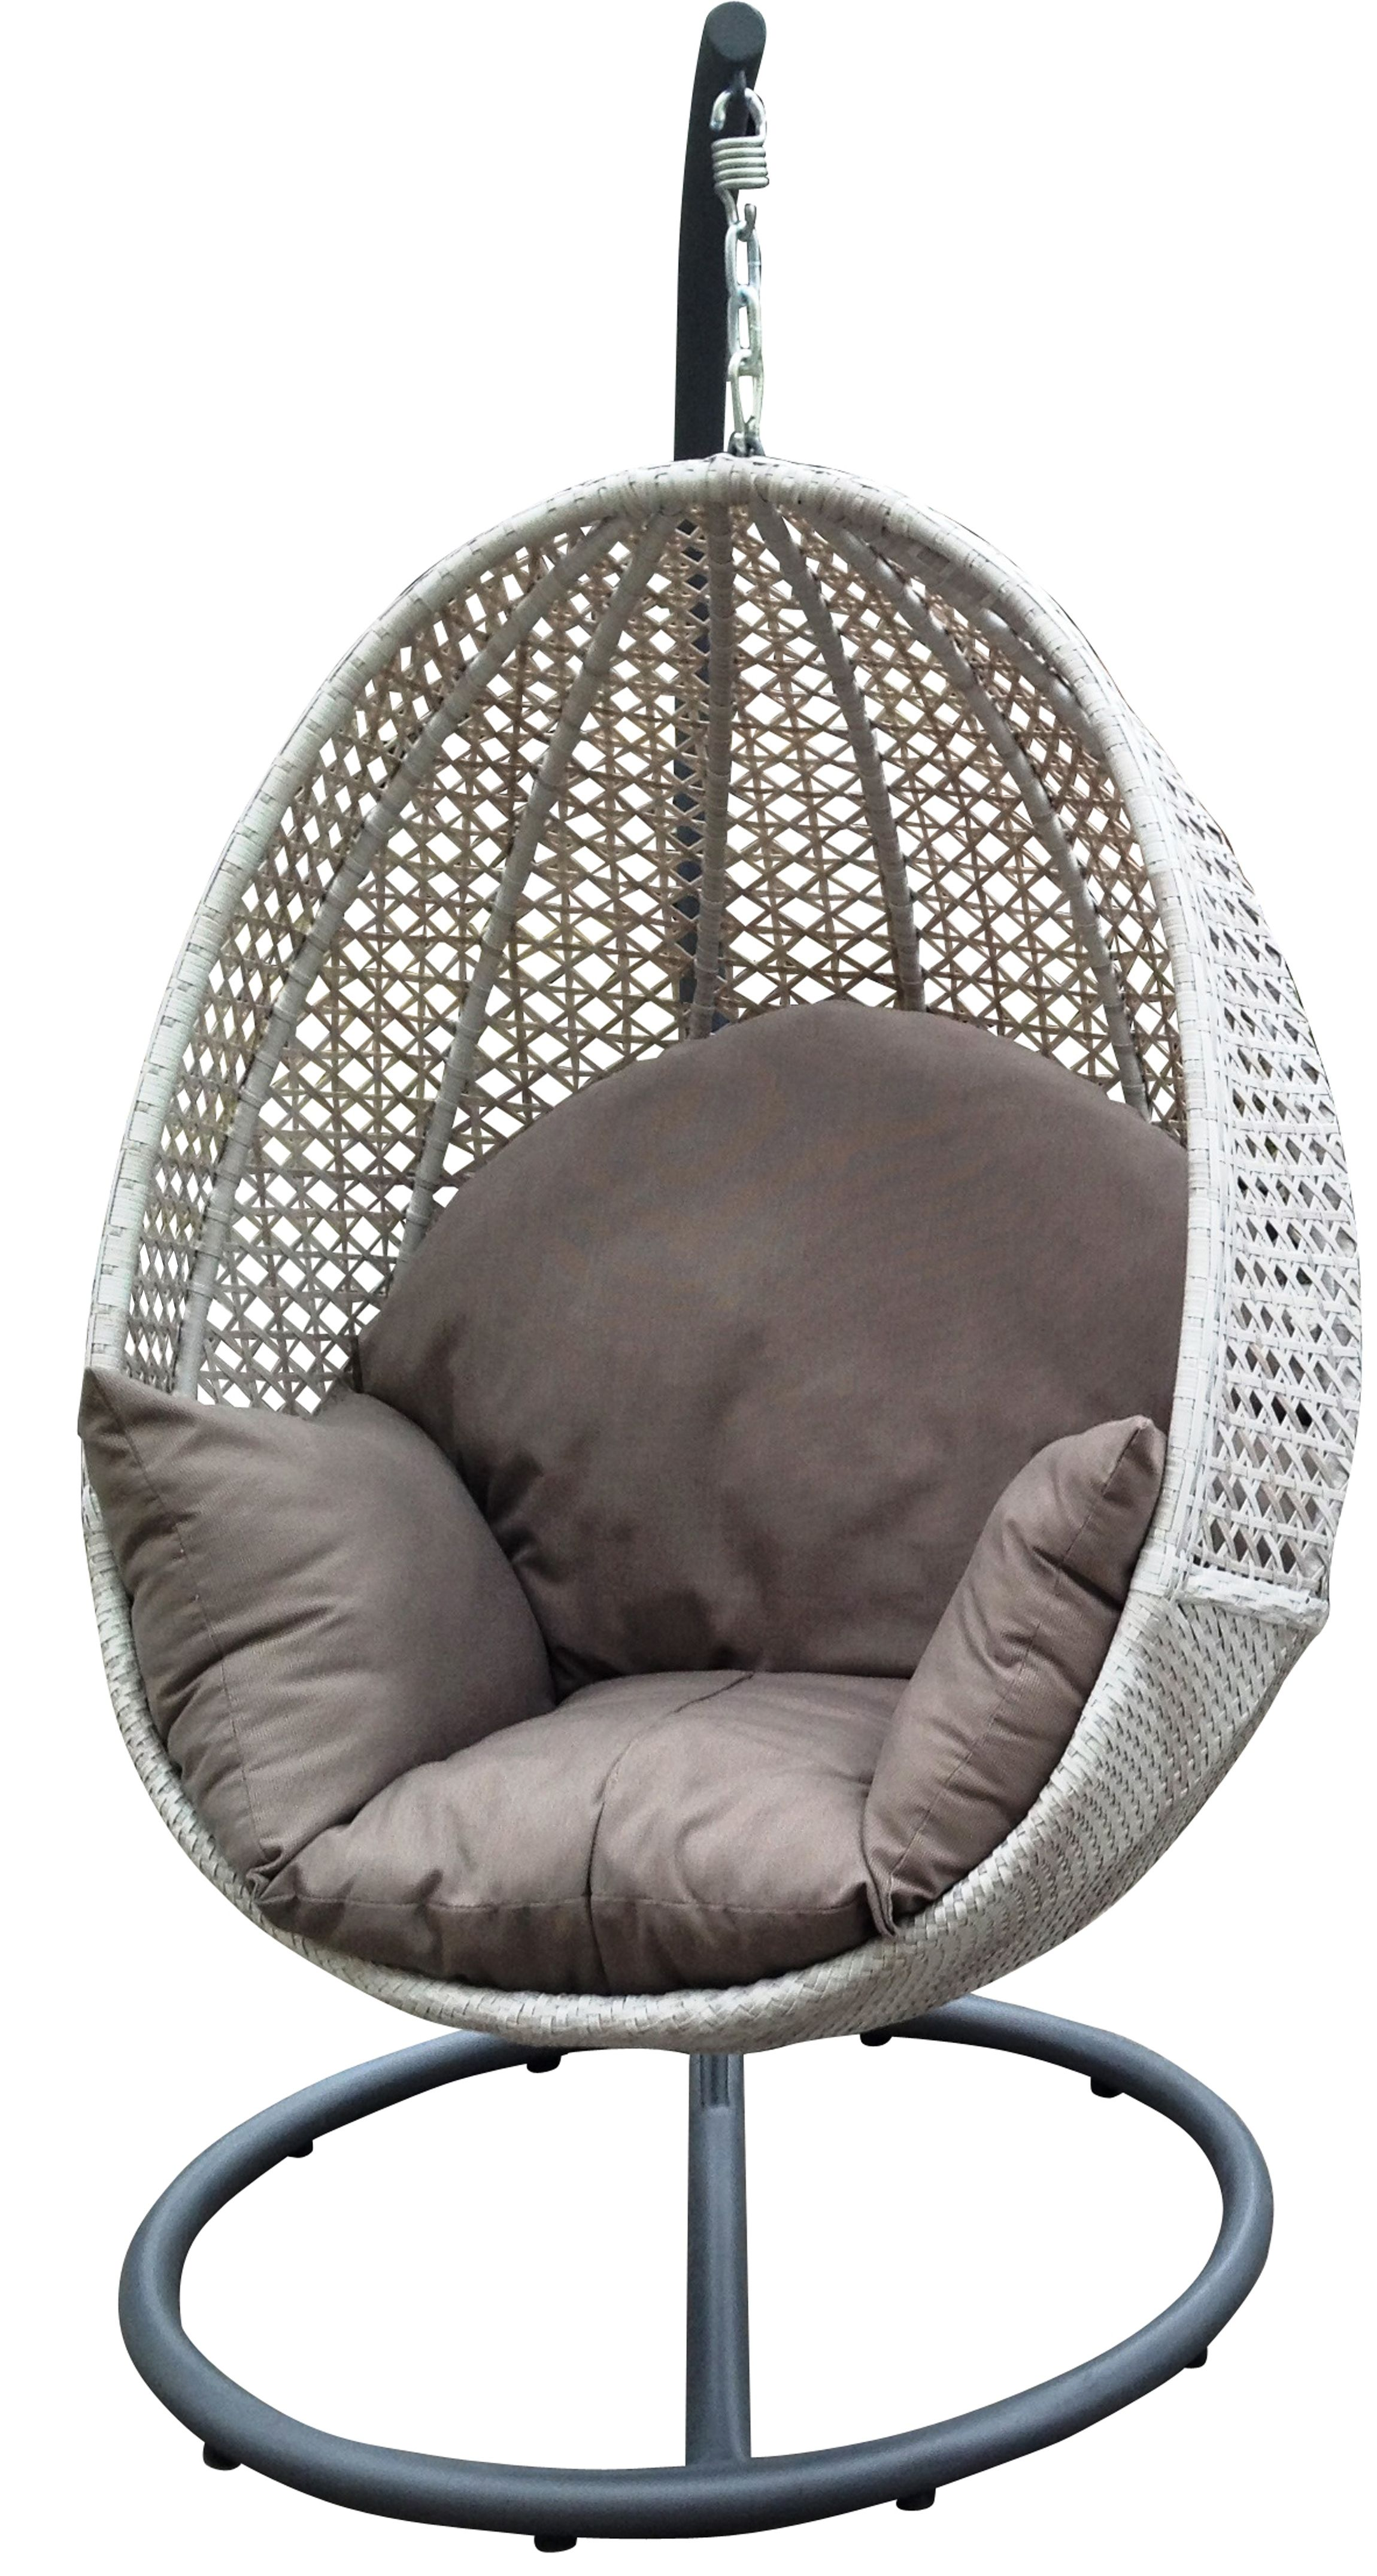 Outdoor hanging egg chair Available at Drovers Inside & Out